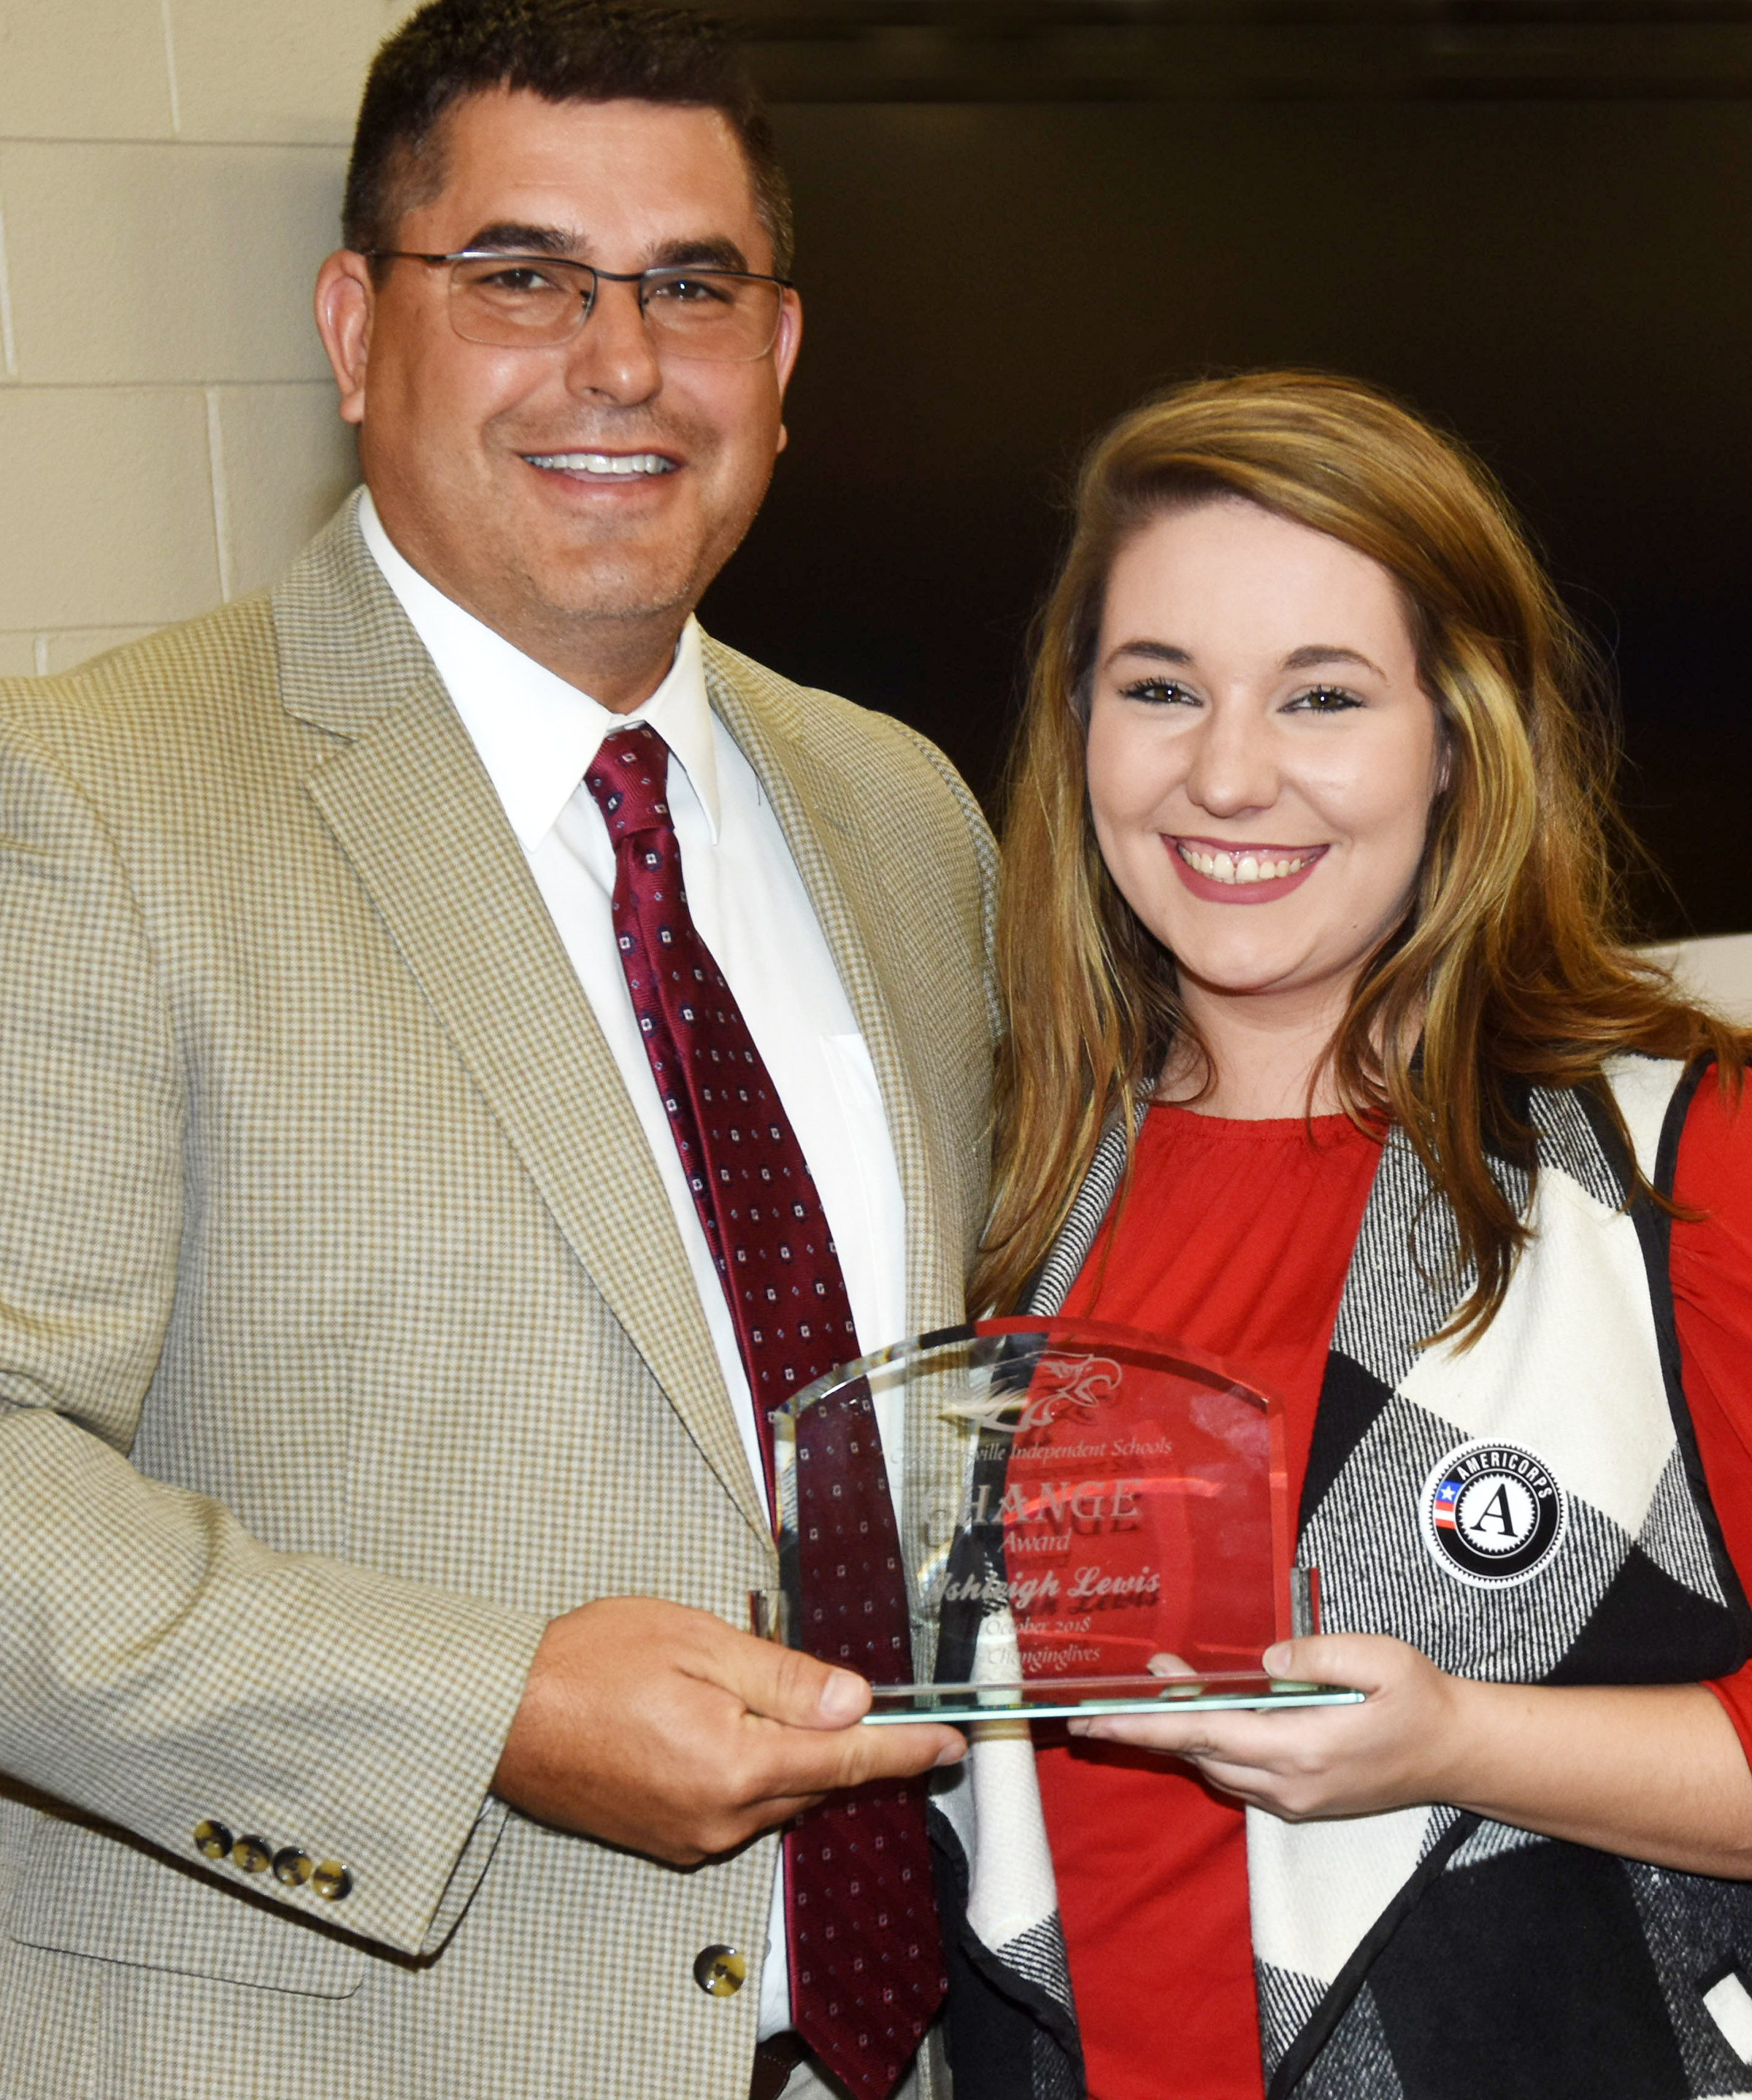 Campbellsville Independent Schools Superintendent Kirby Smith honors Campbellsville Independent Schools AmeriCorps reading tutor Ashleigh Lewis with the classified Change Award.